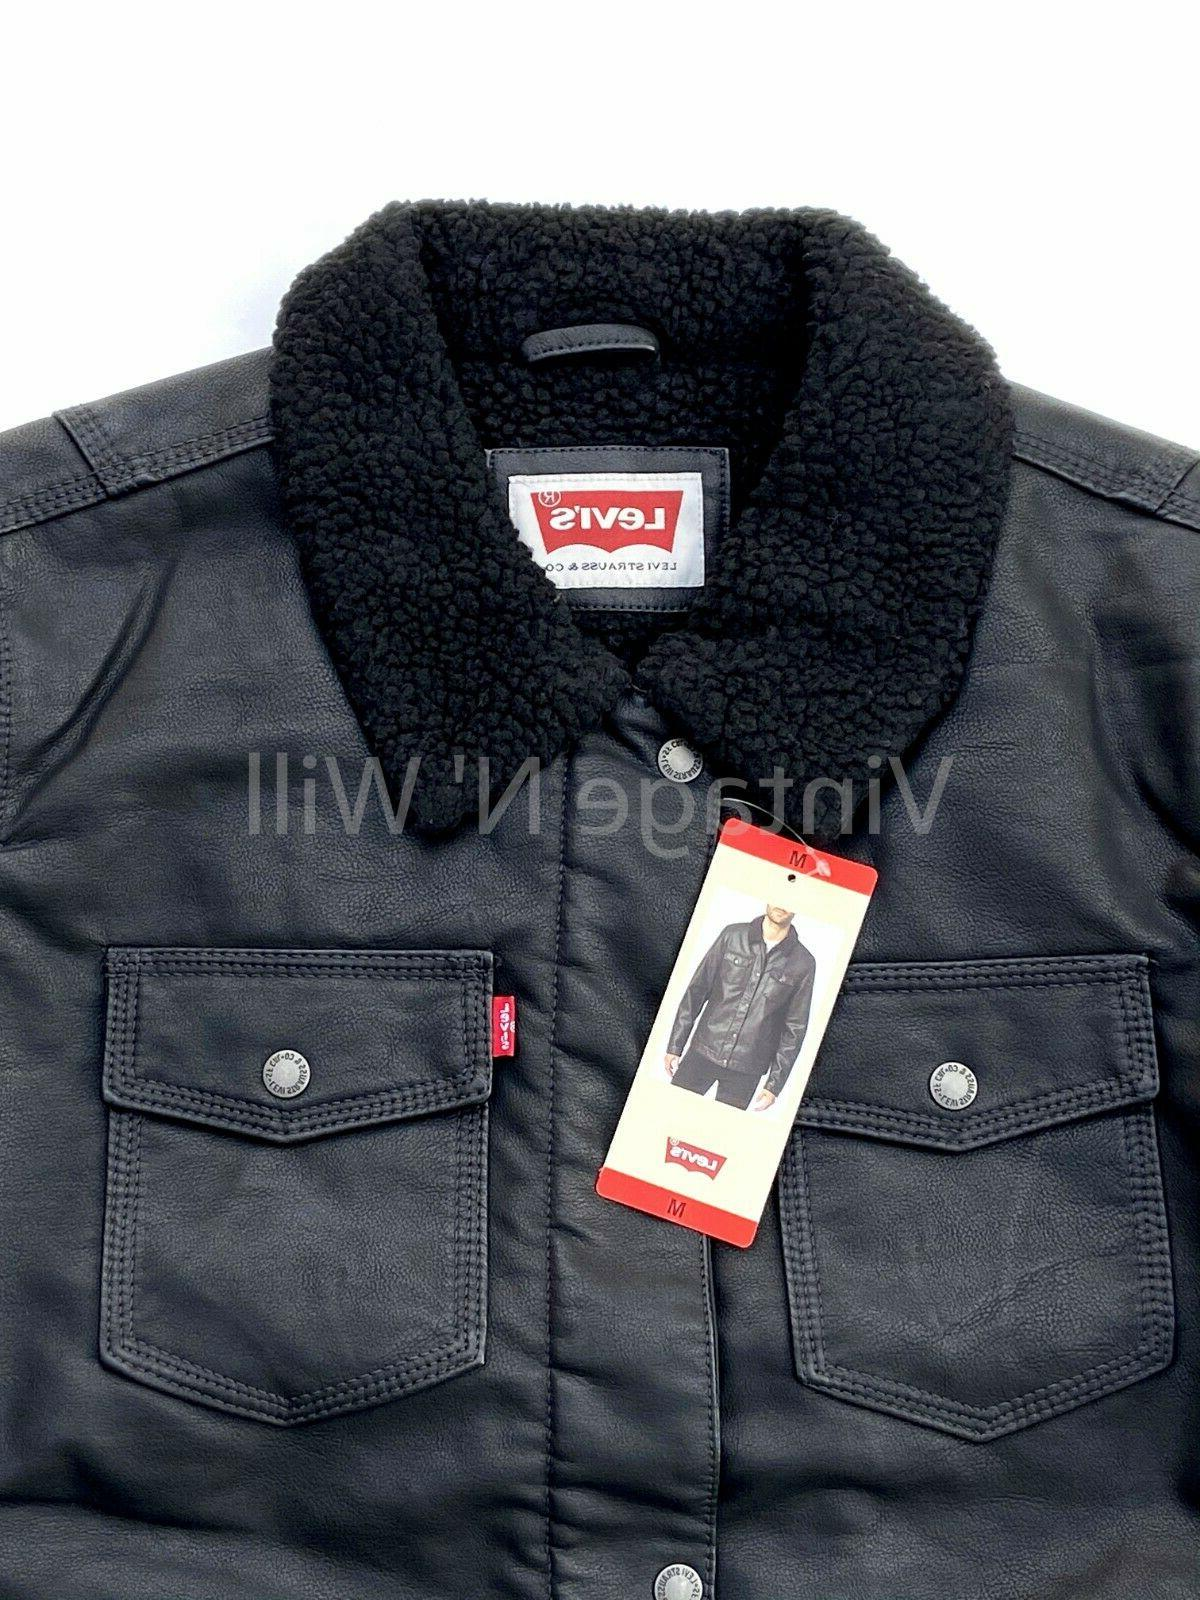 Levis Tab Mens Faux Leather Sherpa Lined Winter Jacket